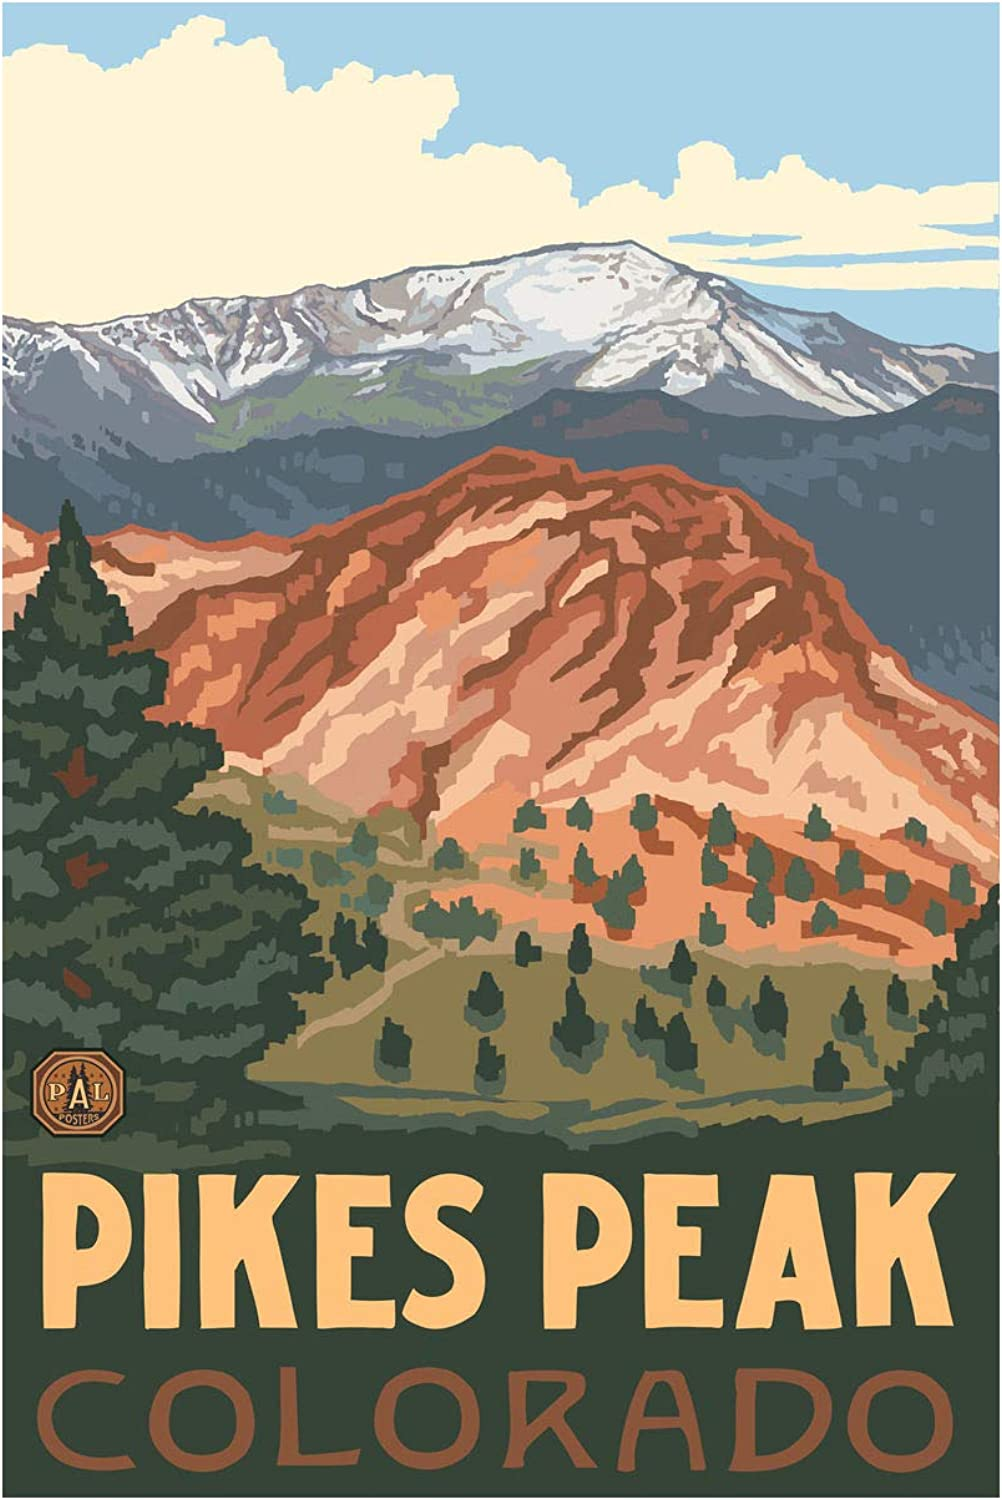 Pikes Peak colorado Travel Art Print Poster by Paul A. Lanquist (24  x 36 )